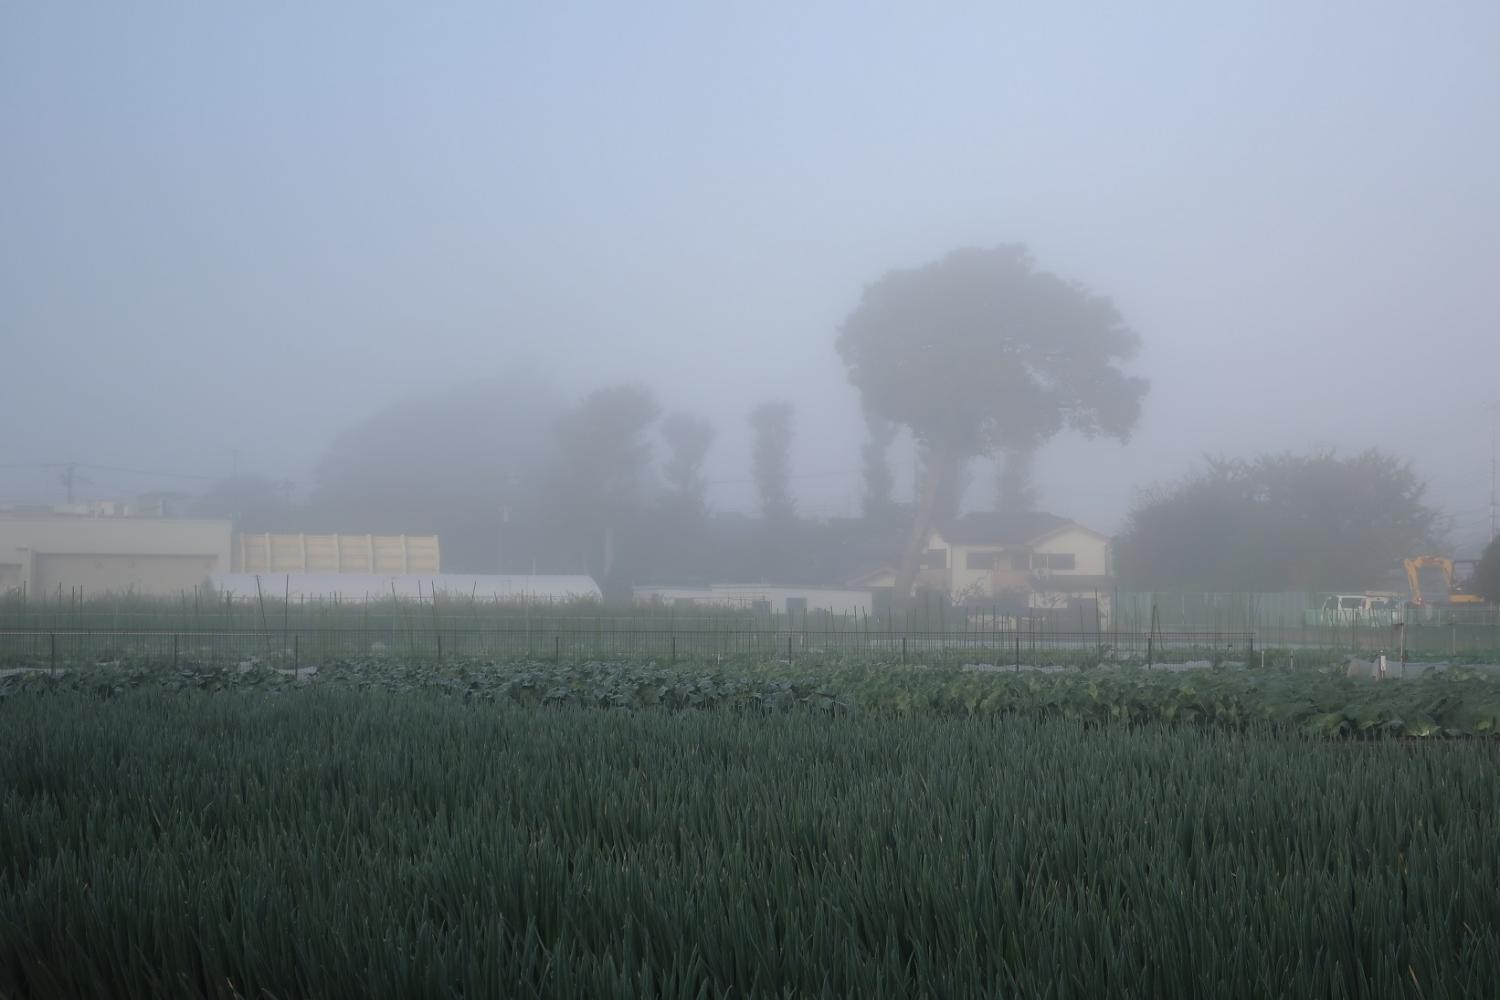 Minamioizumi that was surrounded on October 30 by dense fog